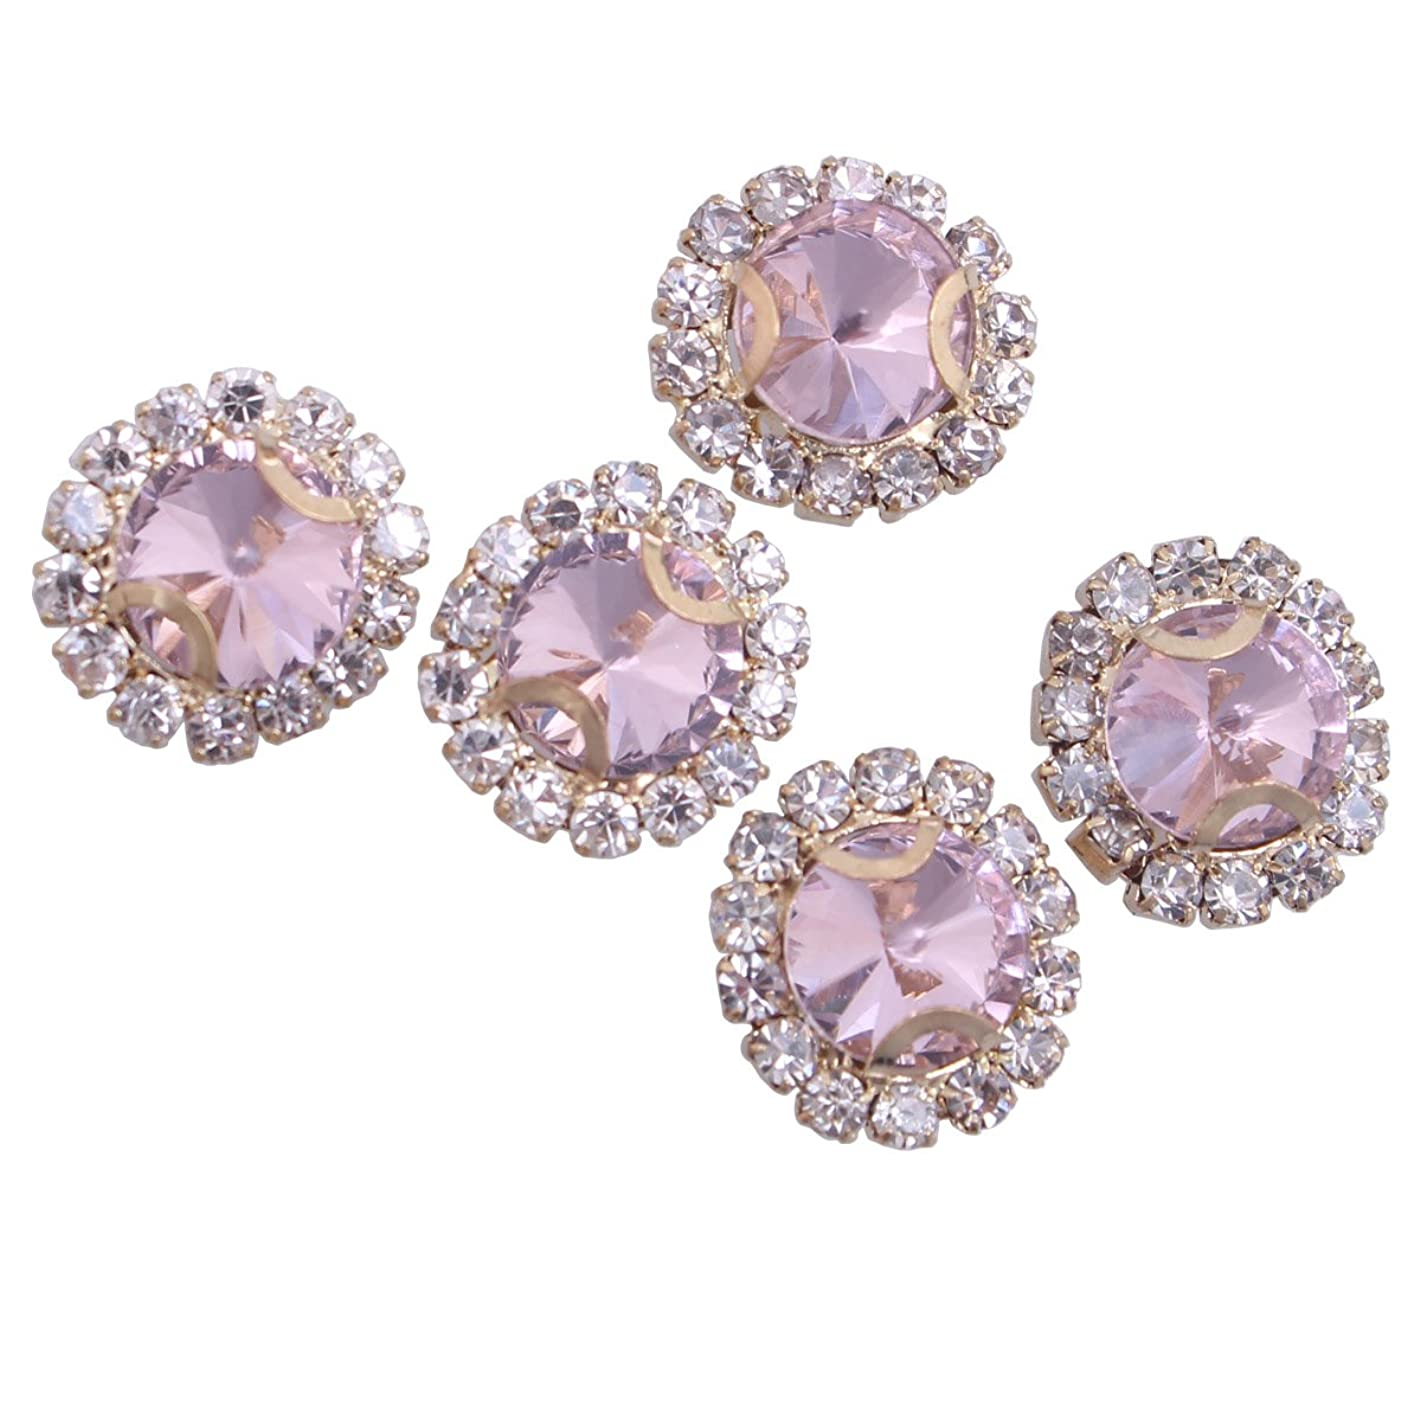 ZIJING 14pcs Gold Setting Pink Color Round Circle Facets Beads Czech Crystal Rhinestones Elements With 4 Holes for Sew On (Pink Color--14pcs)